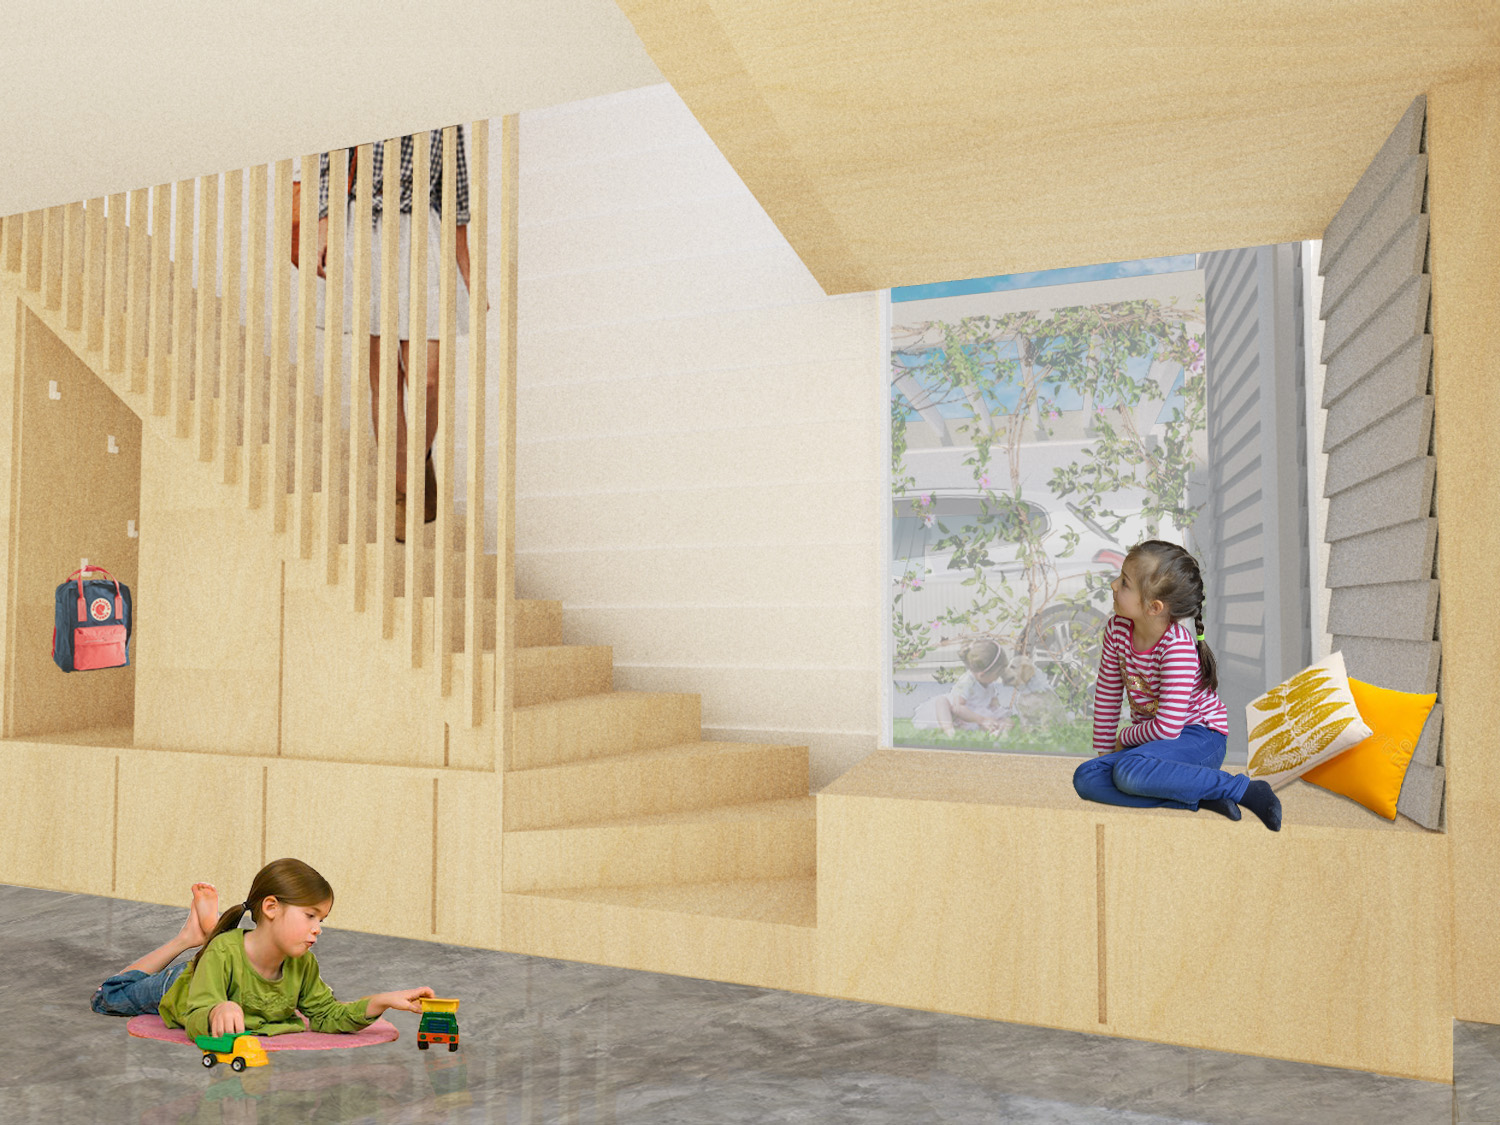 Public_Realm_Lab_House_of_Small_Moments_Stair.jpg